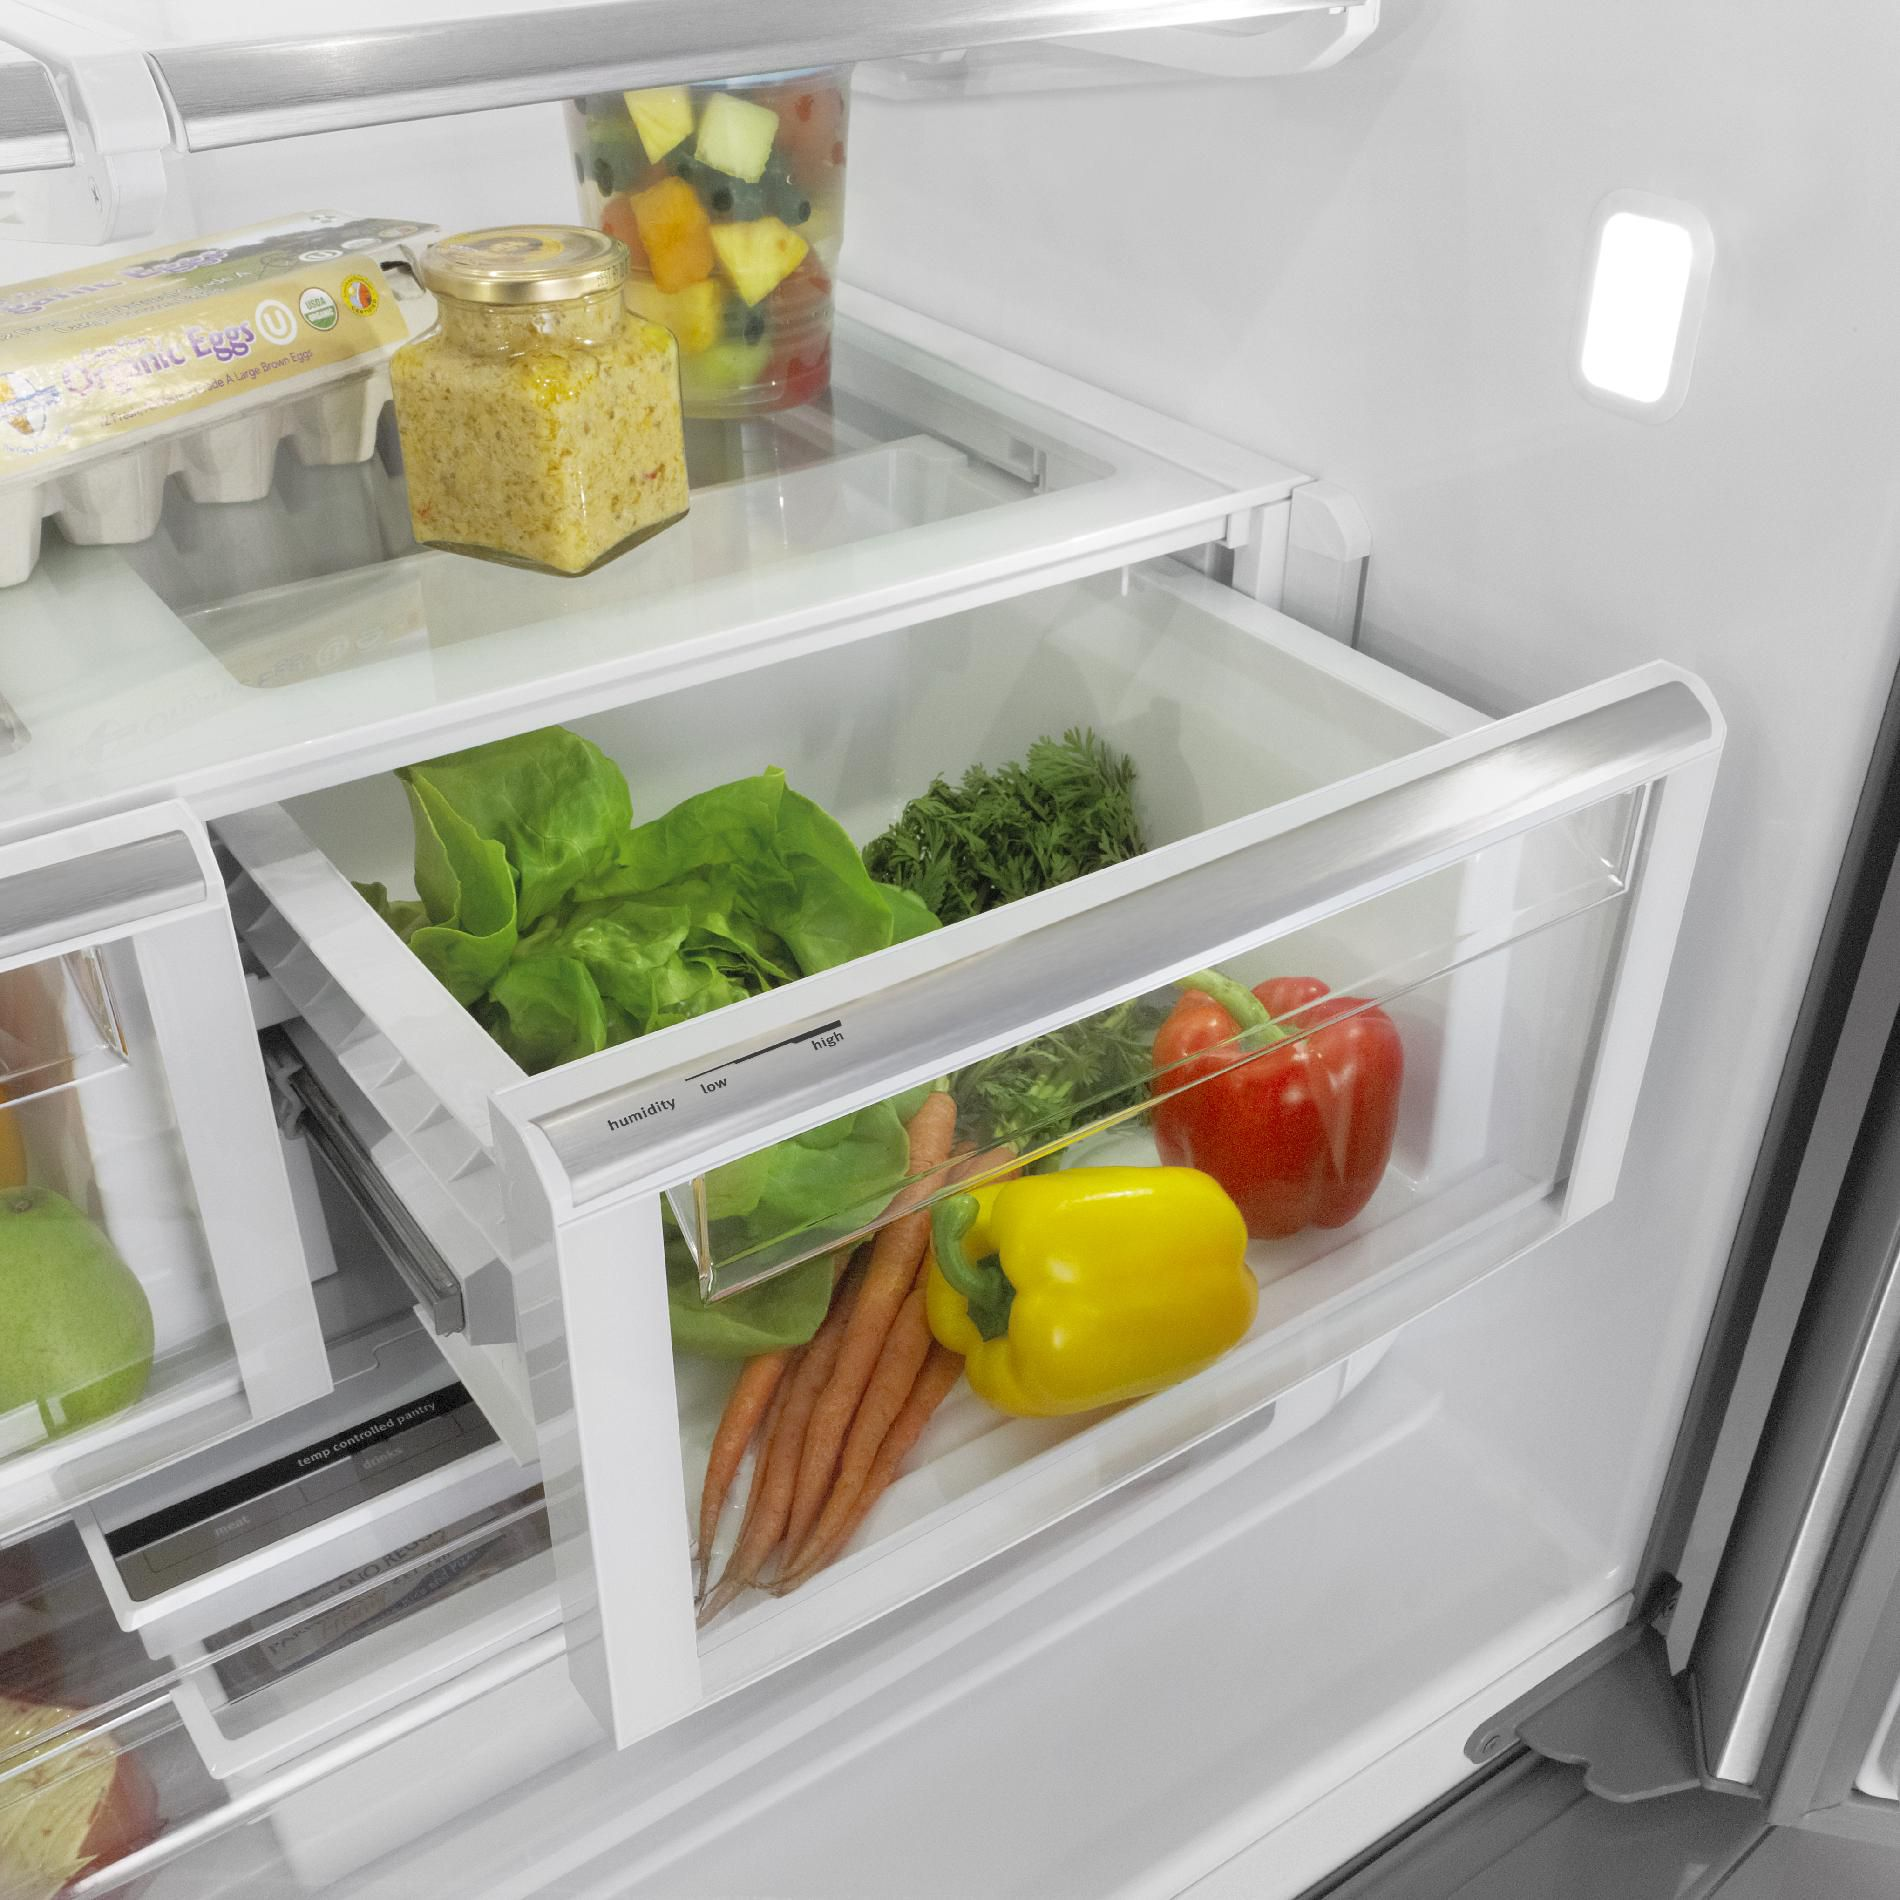 Maytag 29 cu. ft. French-Door Refrigerator w/ Cool Core™ Temperature Management - White